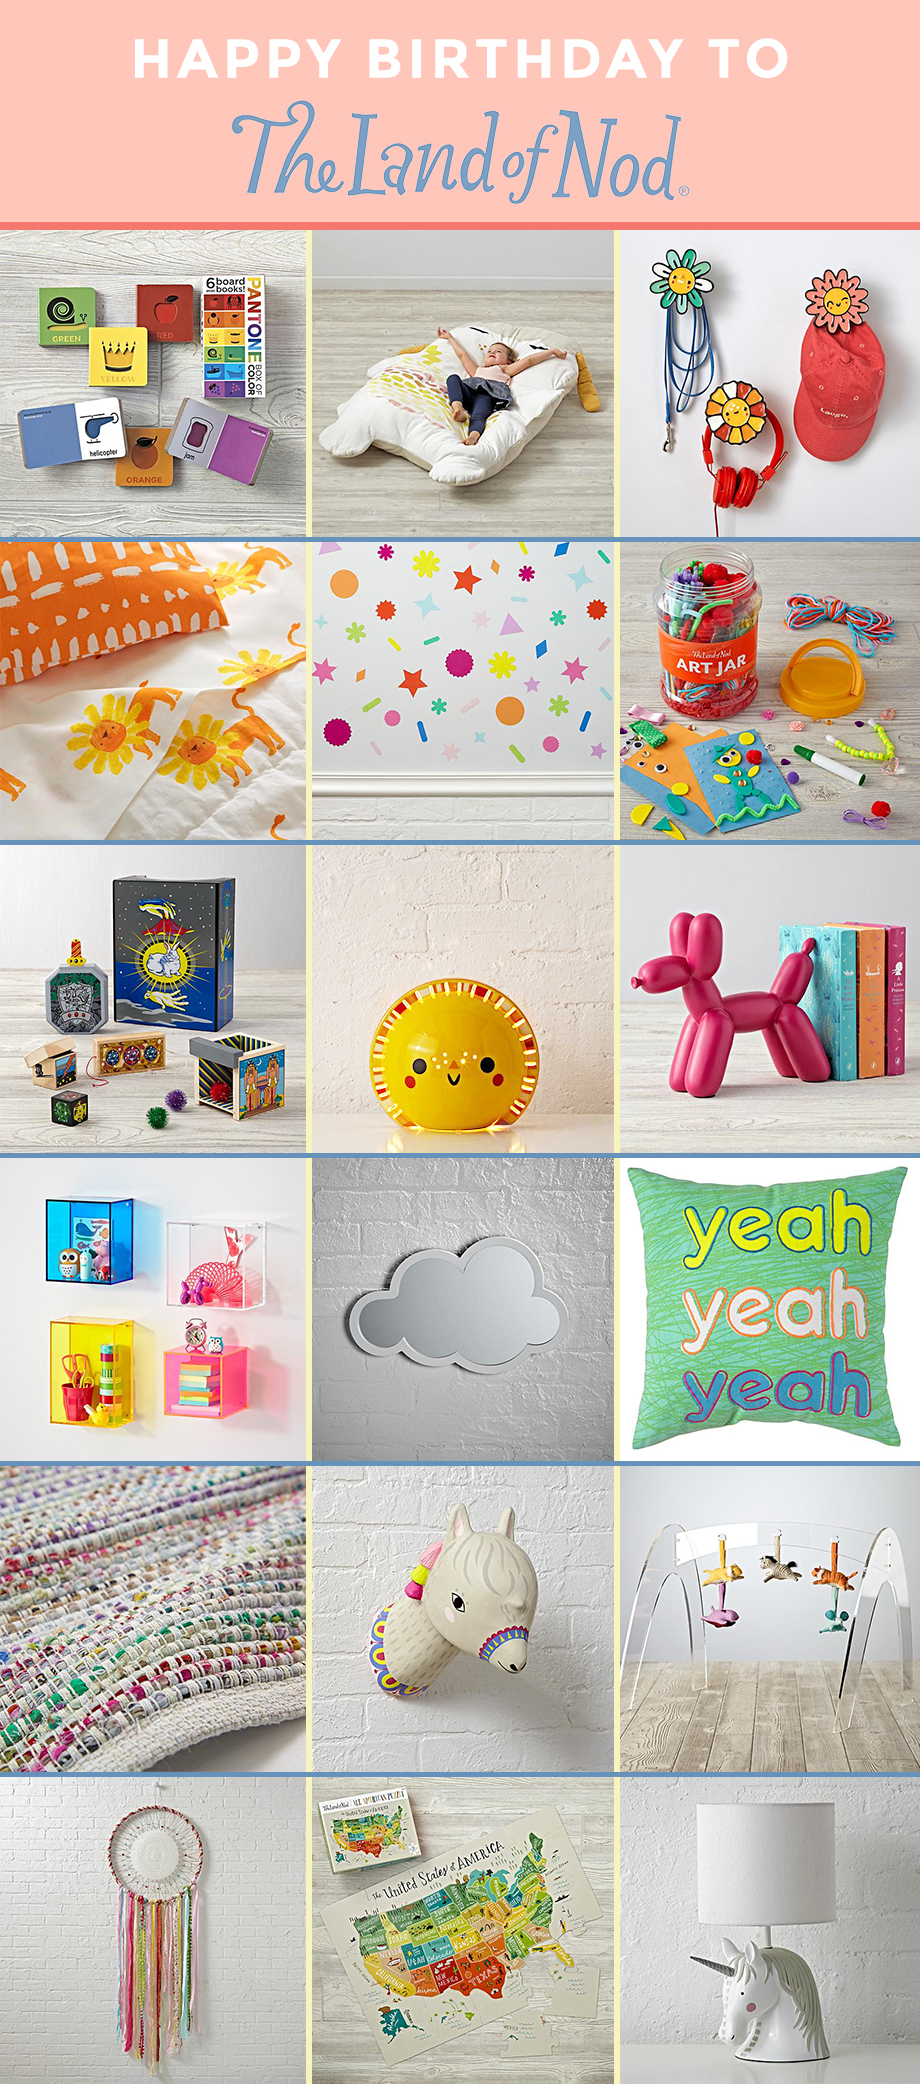 This is a post by Glitter and Bubbles that celebrates The Land of Nod's 20th birthday.